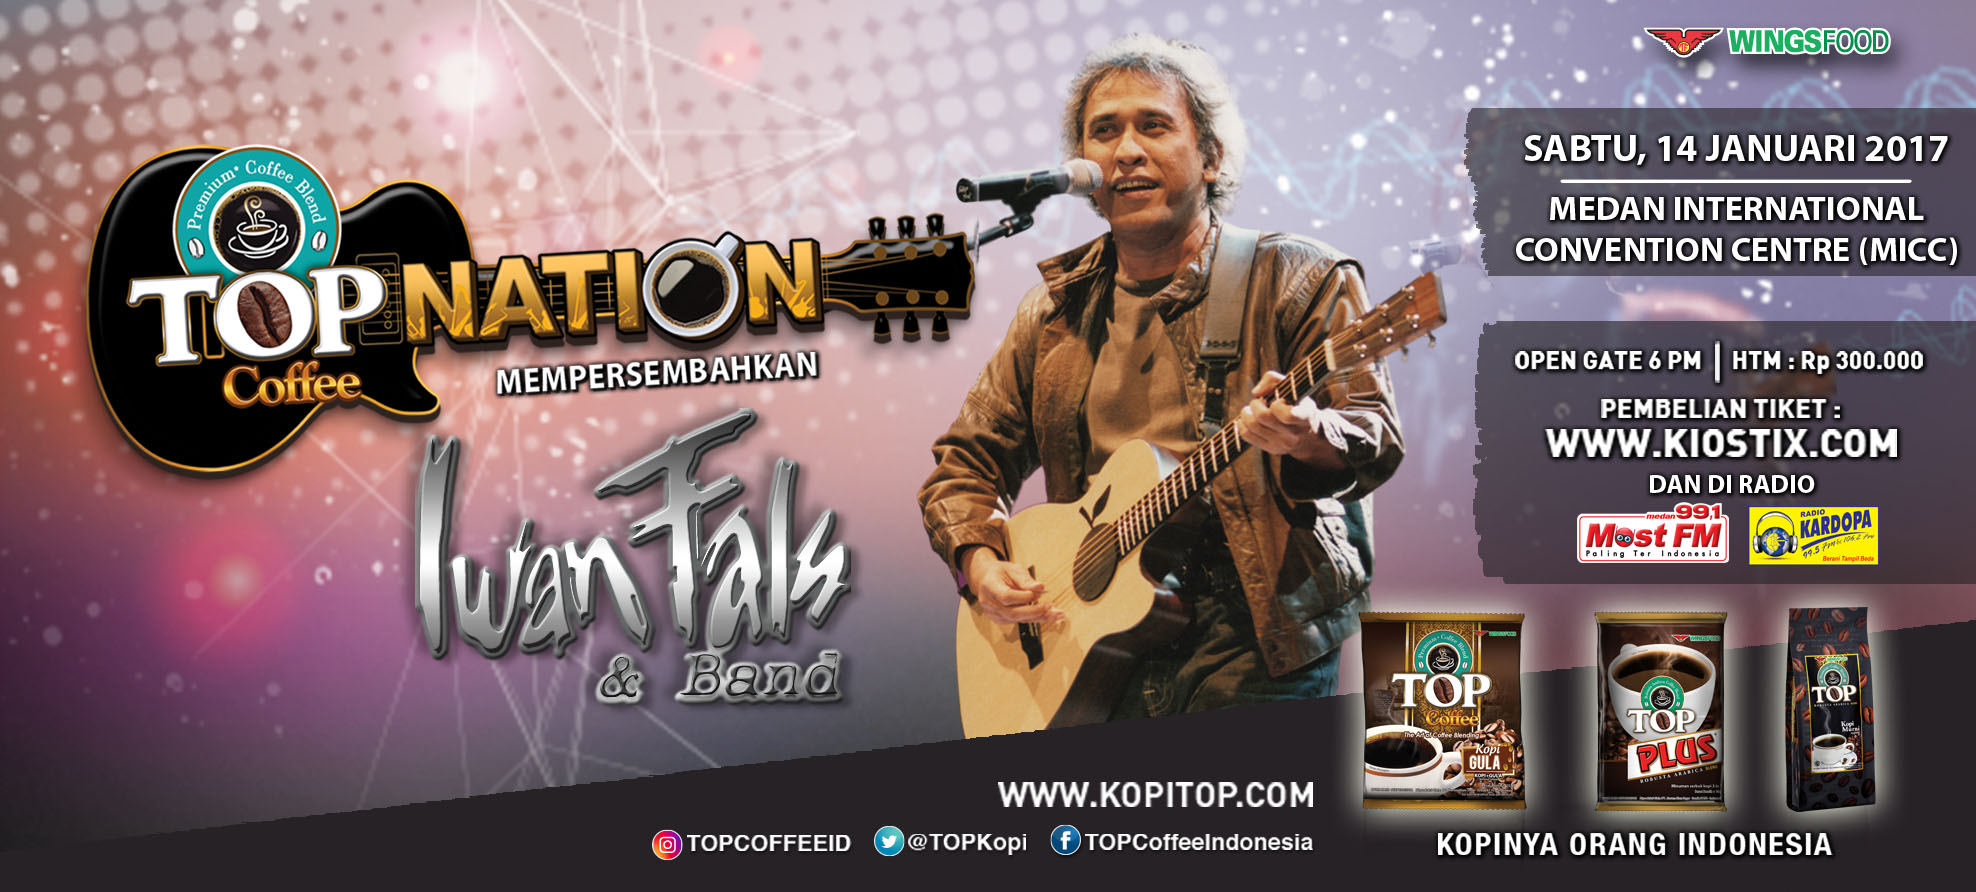 Top Nation Konser Iwan Fals  & Band di Medan